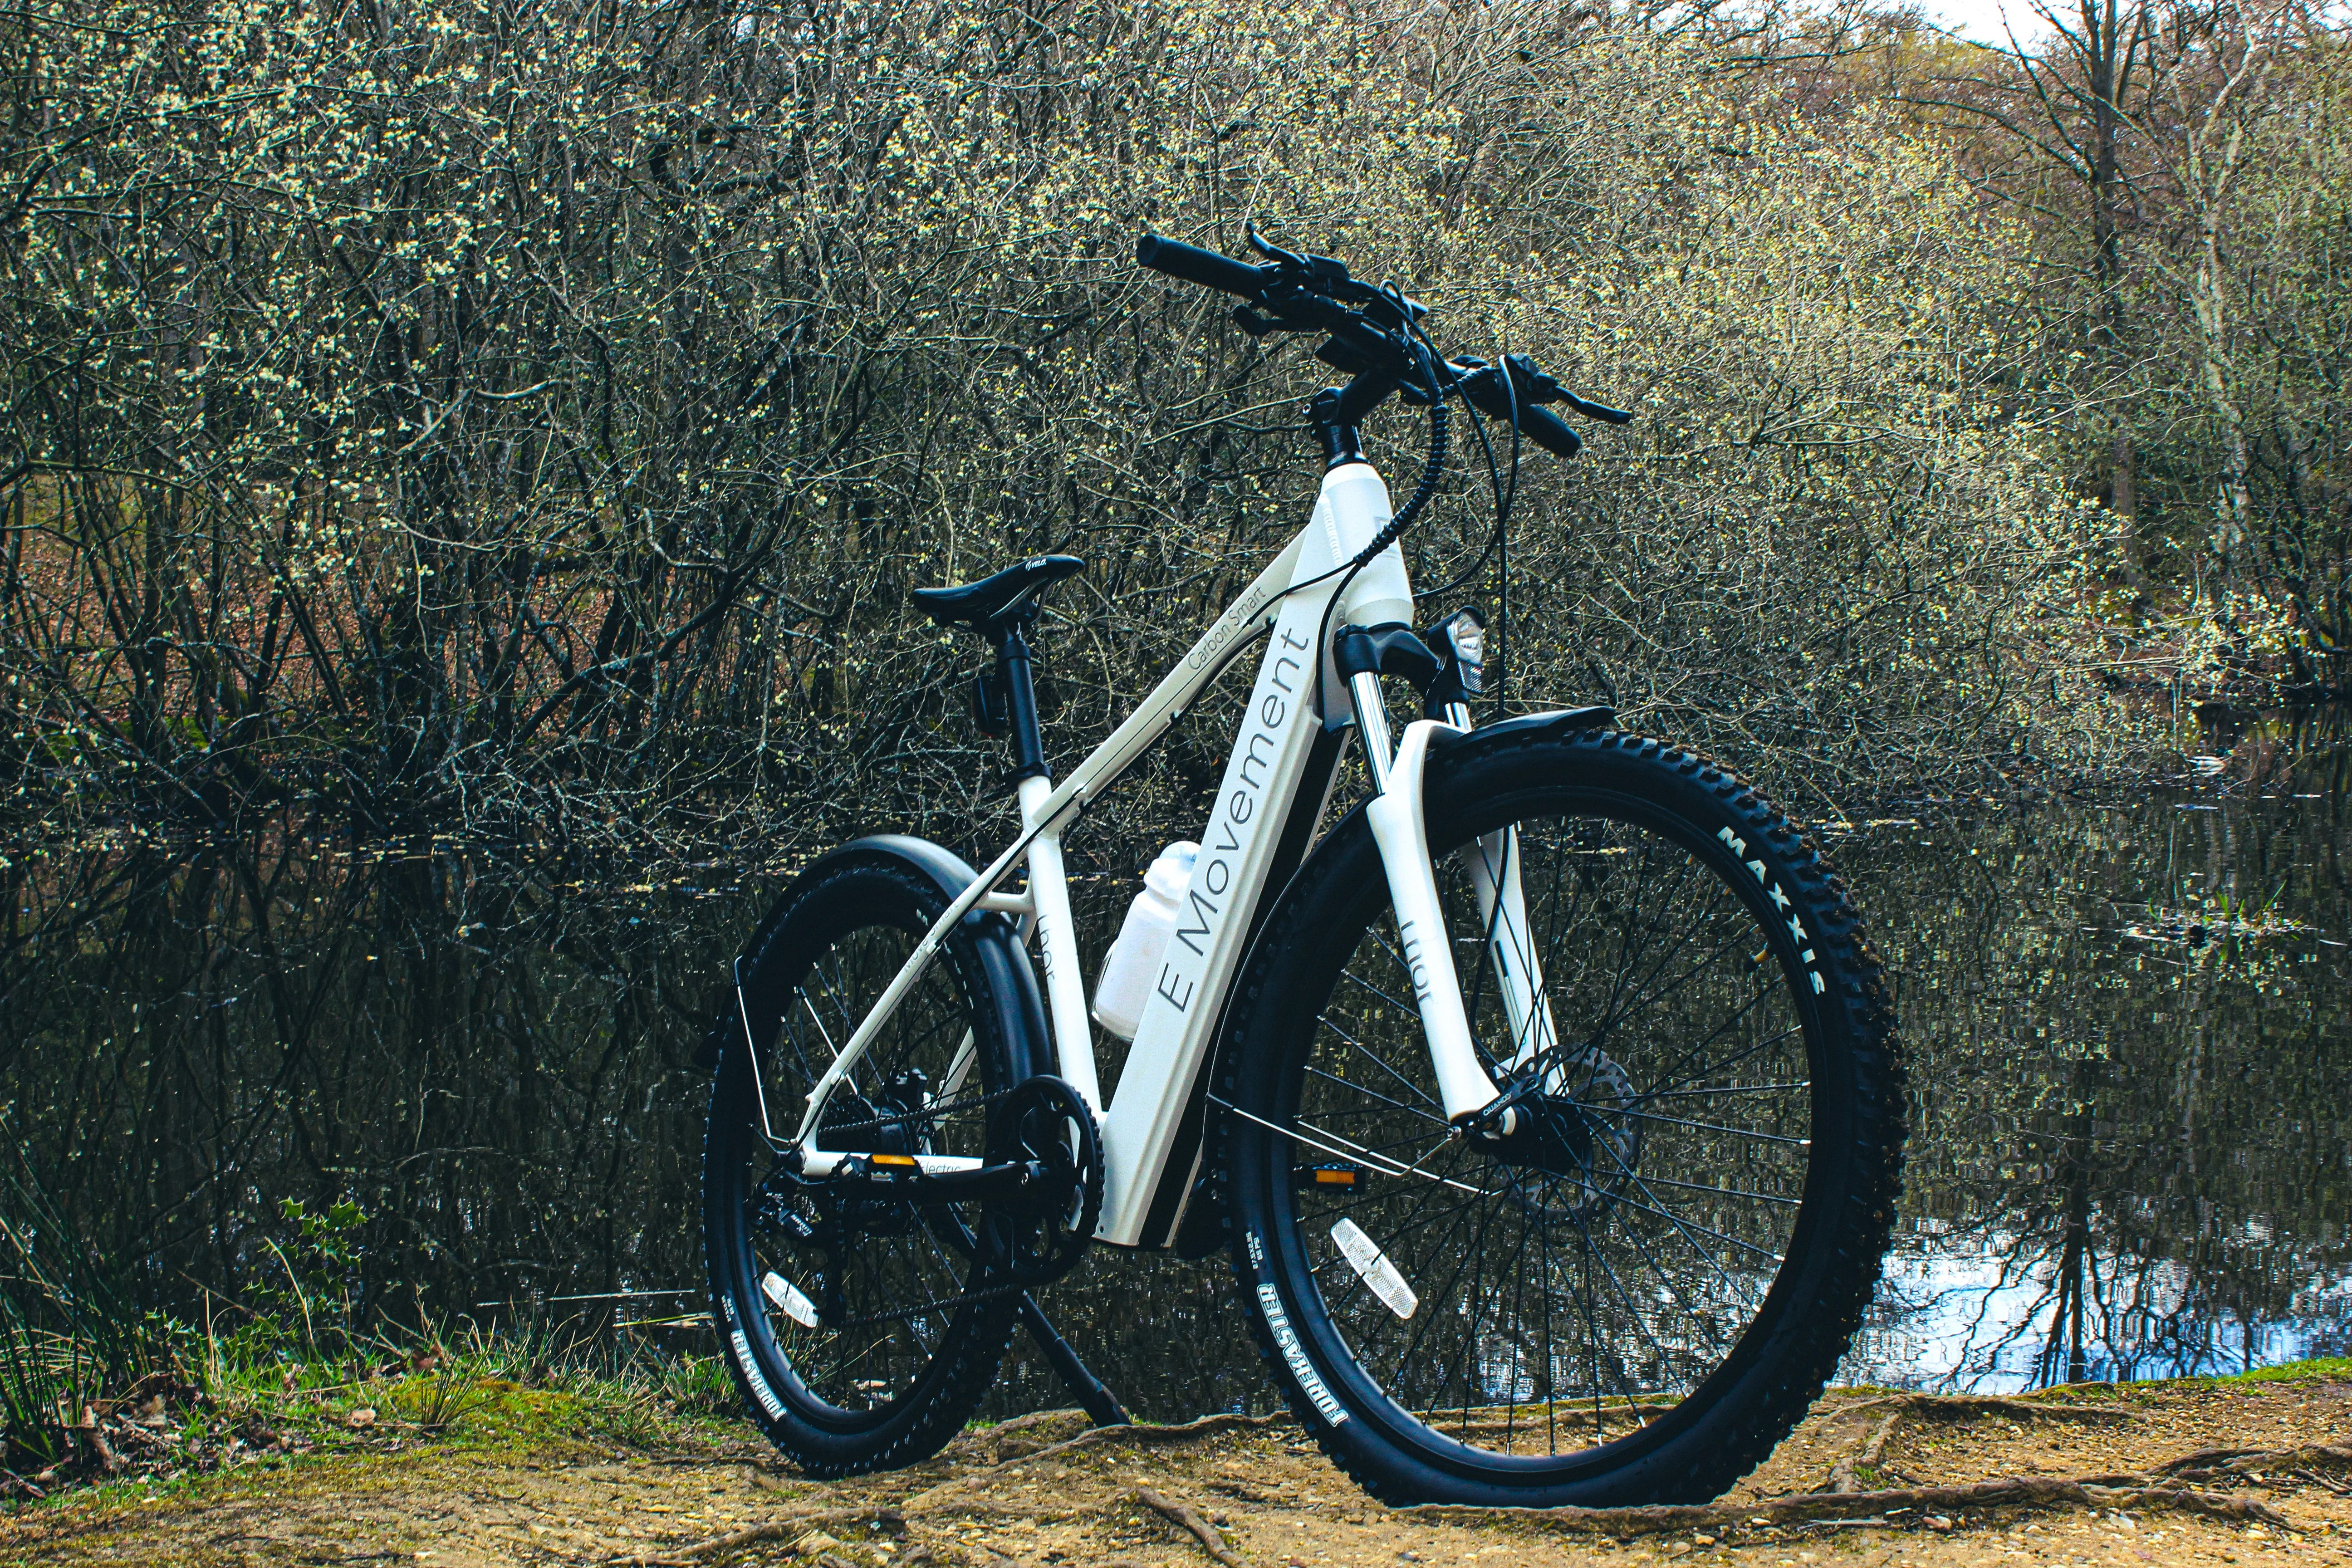 The 10.4-Ah battery hidden away in the downtube is reckoned good for up to 80 miles of pedal assist riding per charge